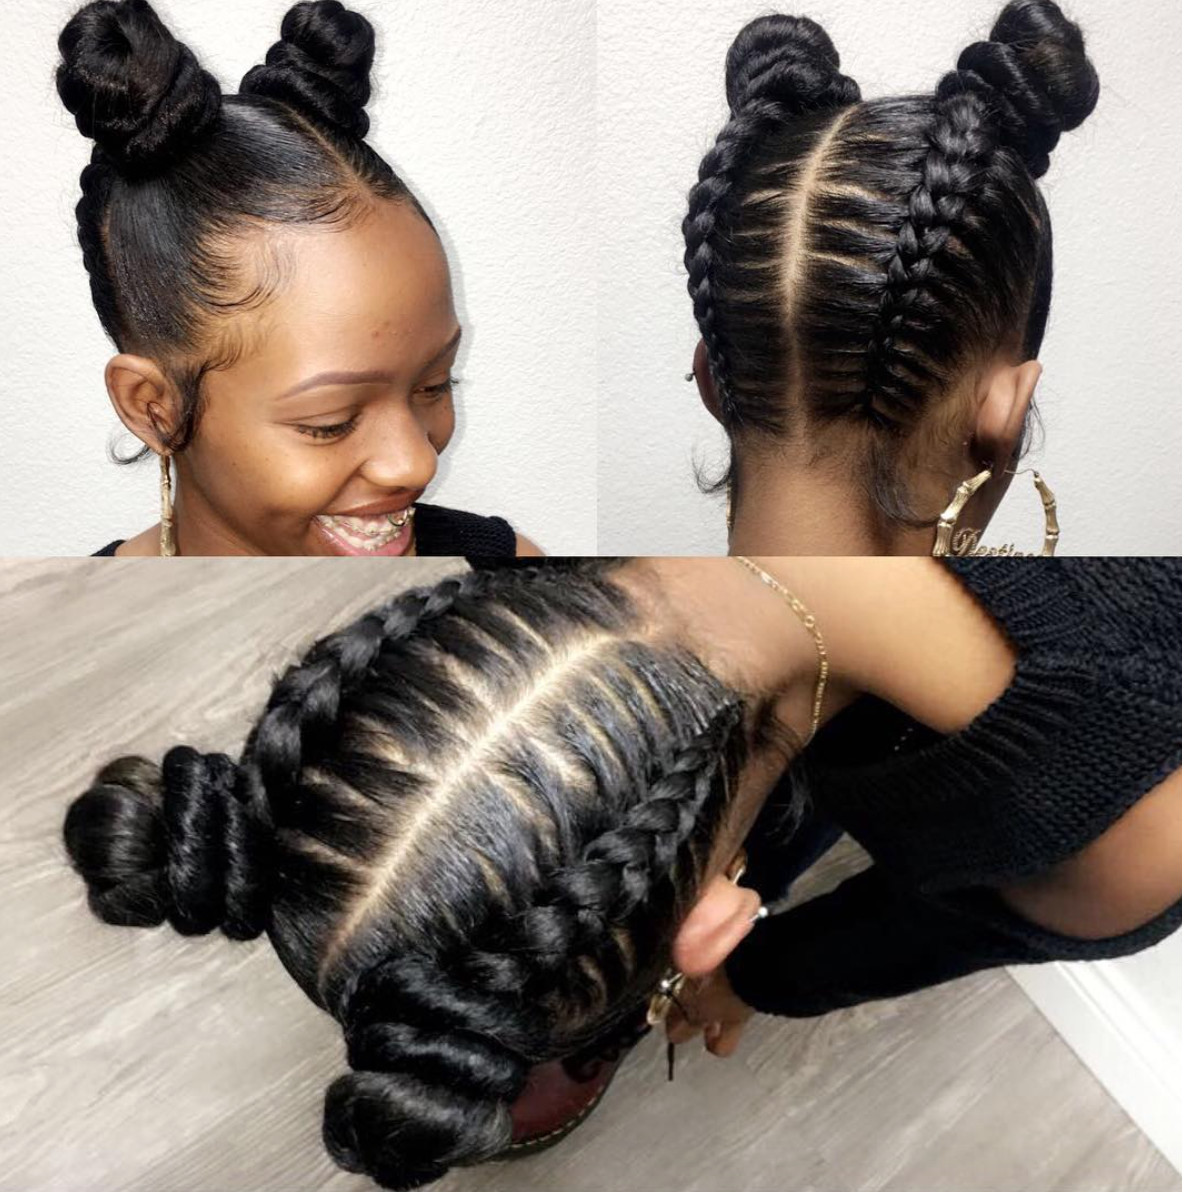 pin by taysha crowell on hair we go | natural hair styles